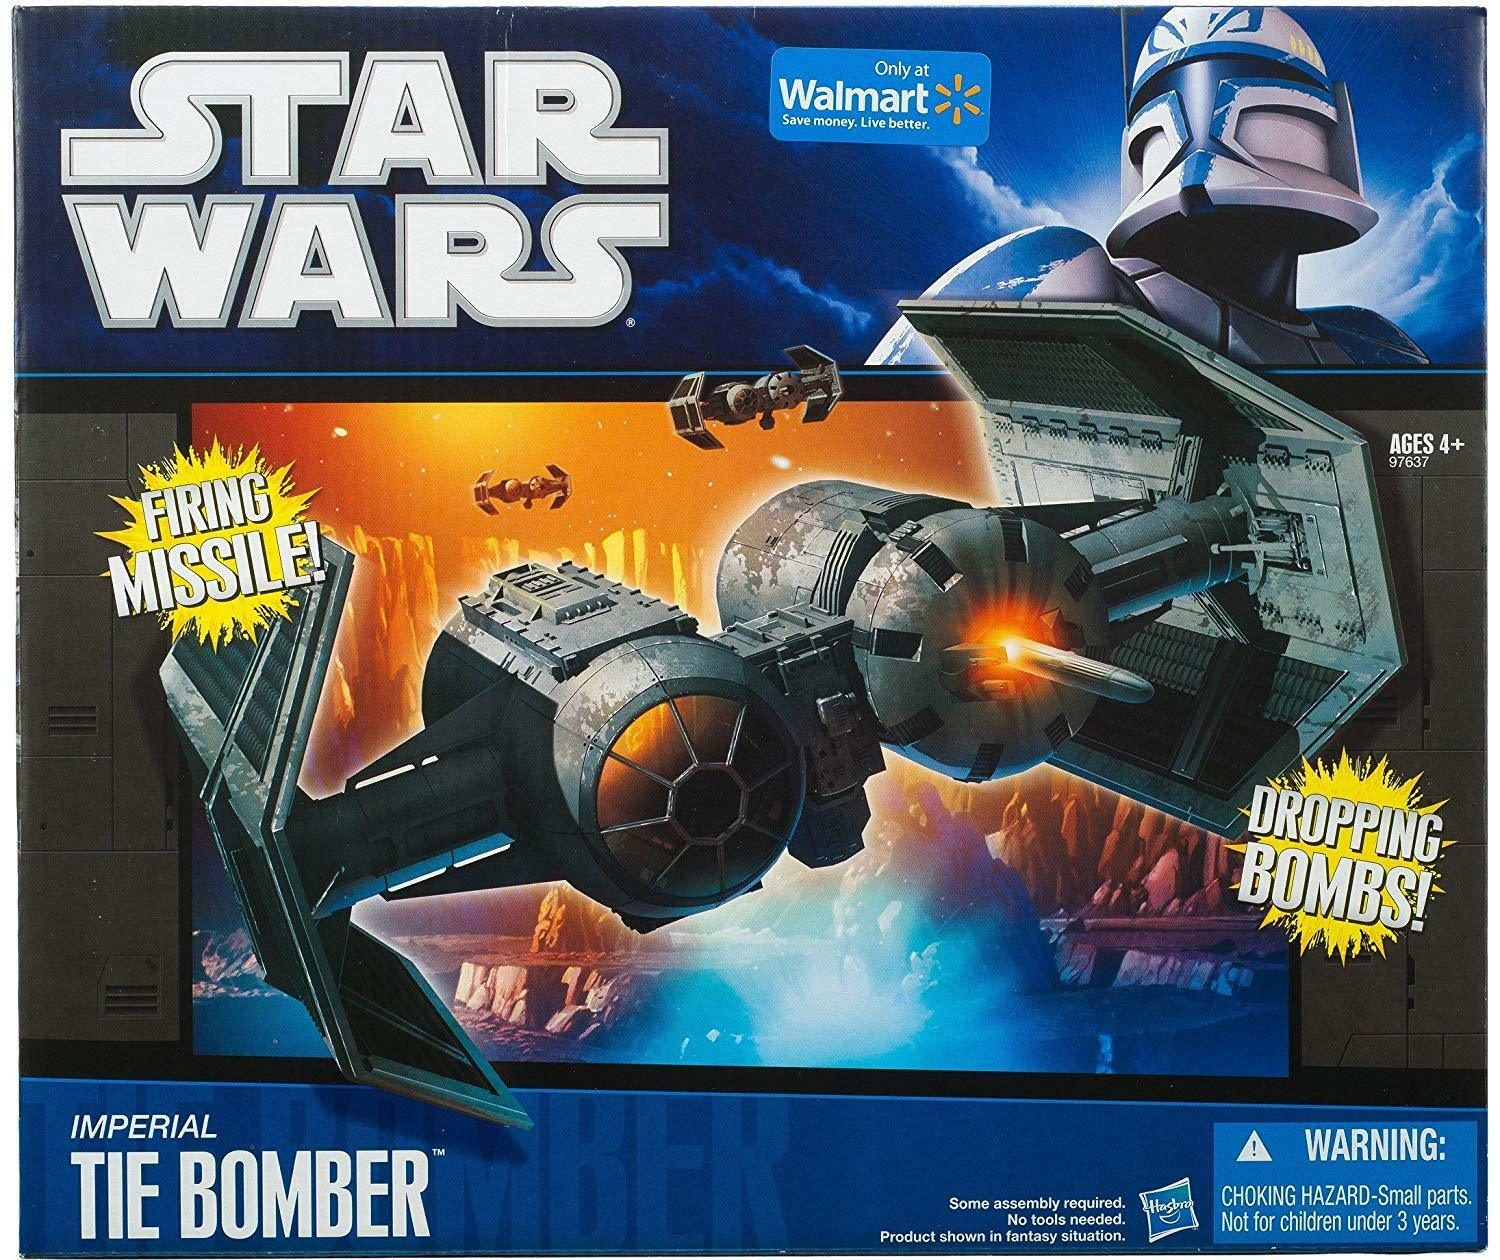 Star Wars Imperial Tie Bomber by Hasbro